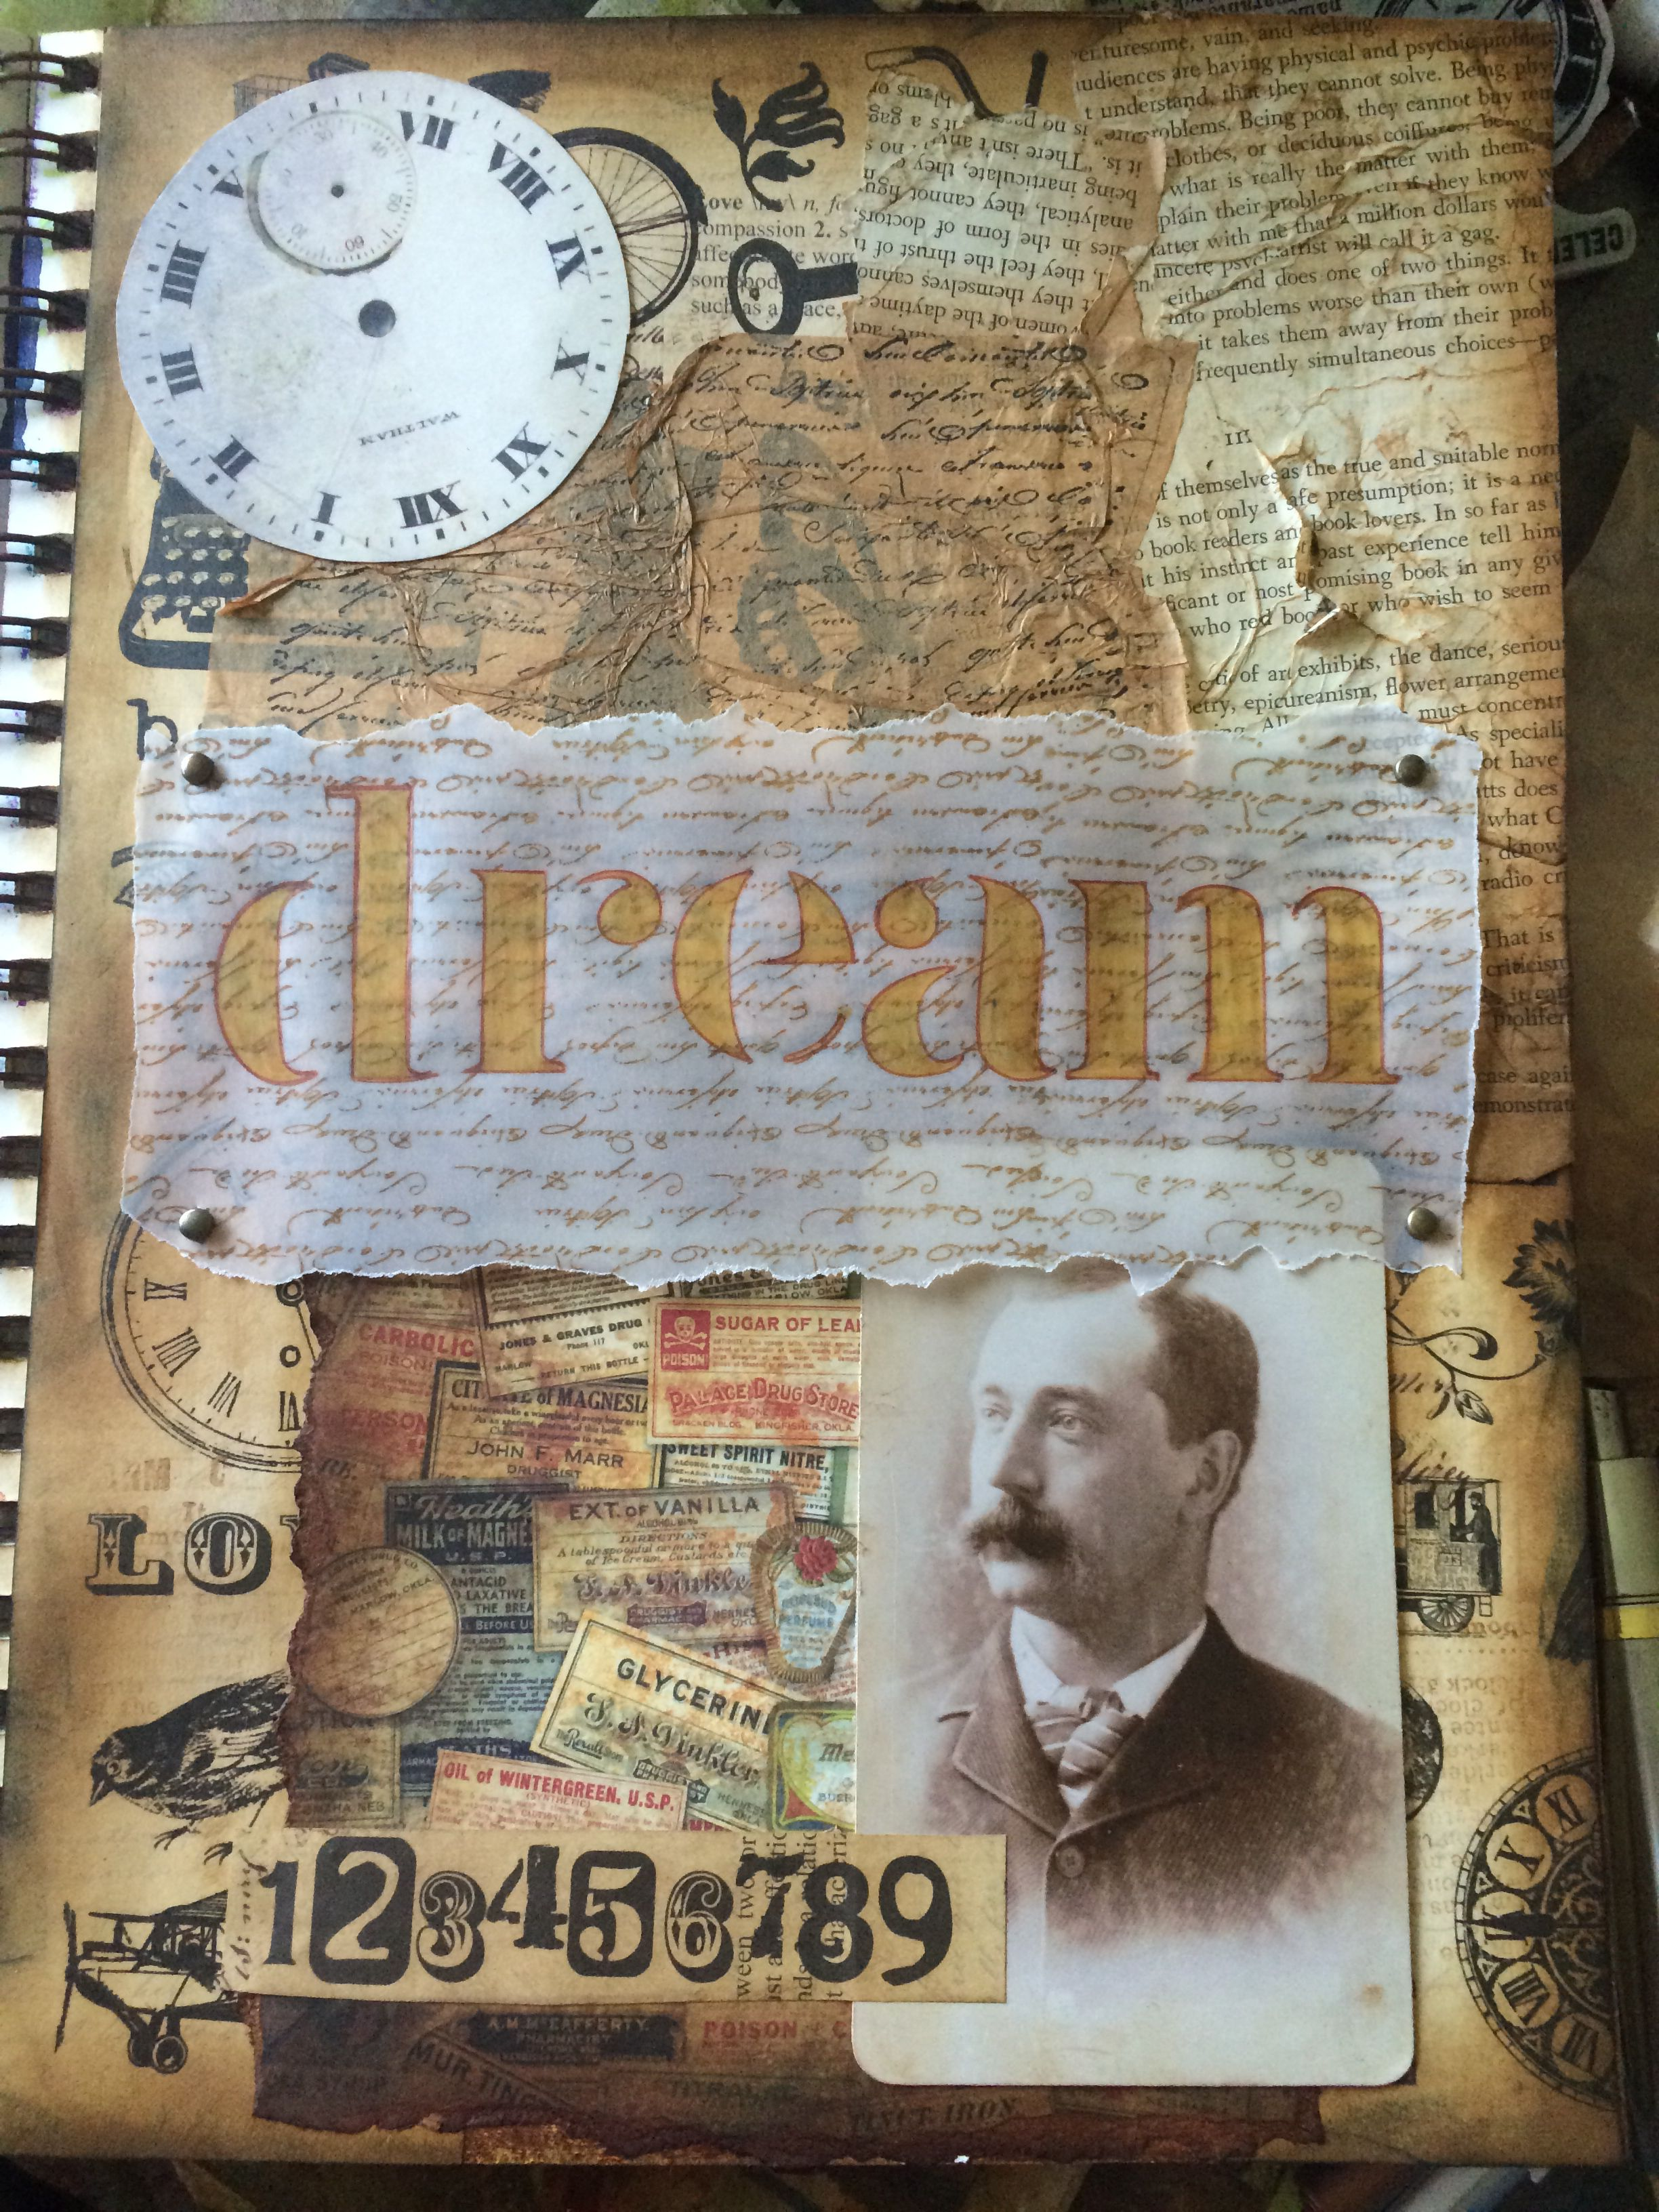 Dream Mixed Media Vintage Art Journal Page By Adam Atom 07 24 2014 Art Journal Backgrounds Art Journal Art Journal Pages